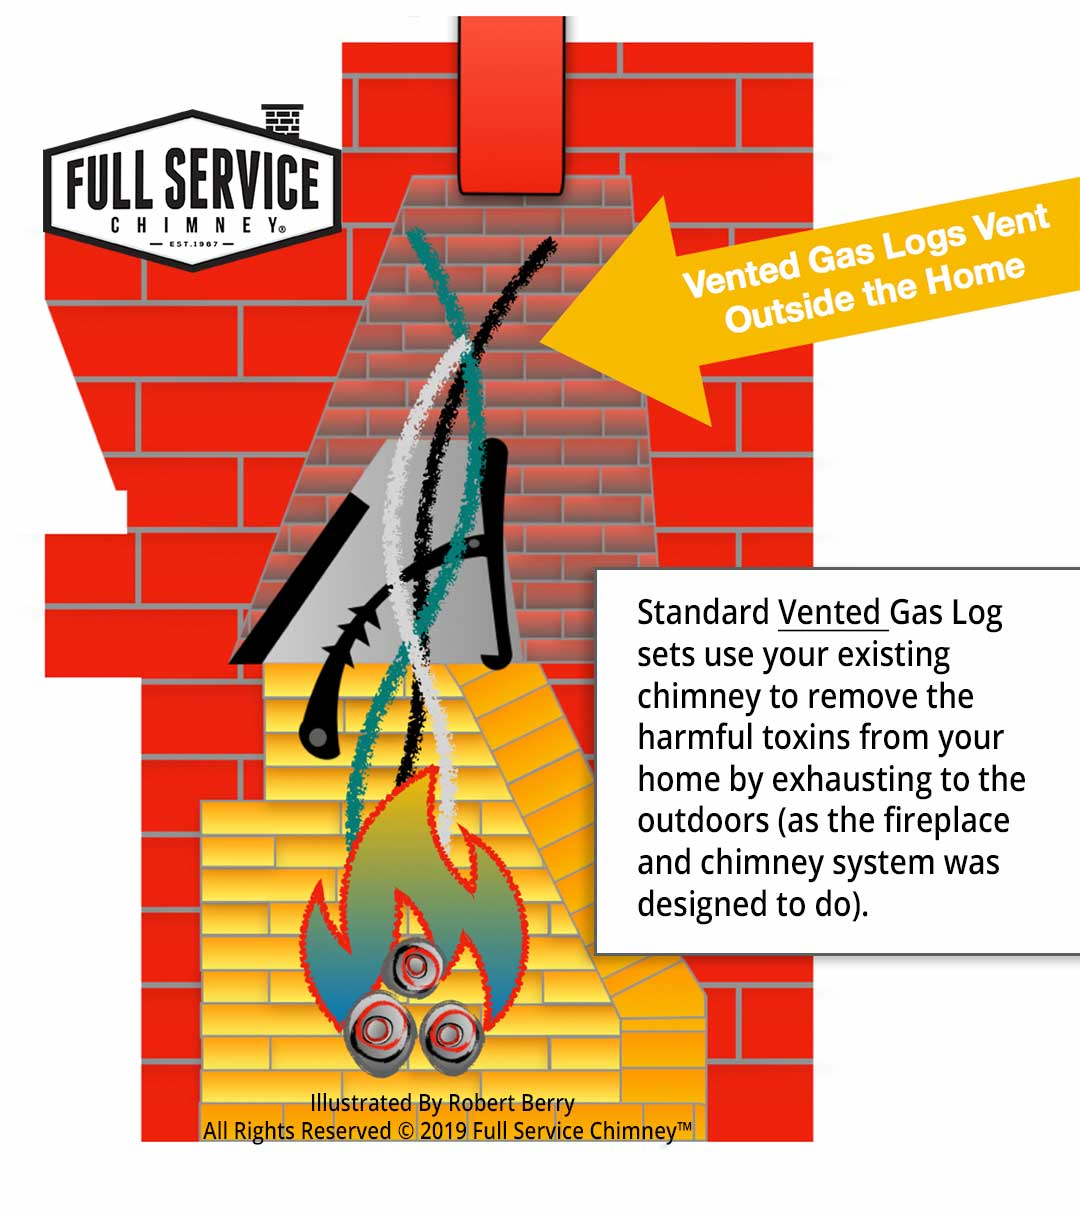 Illustration shows Vented Gas Logs Use Chimneys to Vent Outside Home